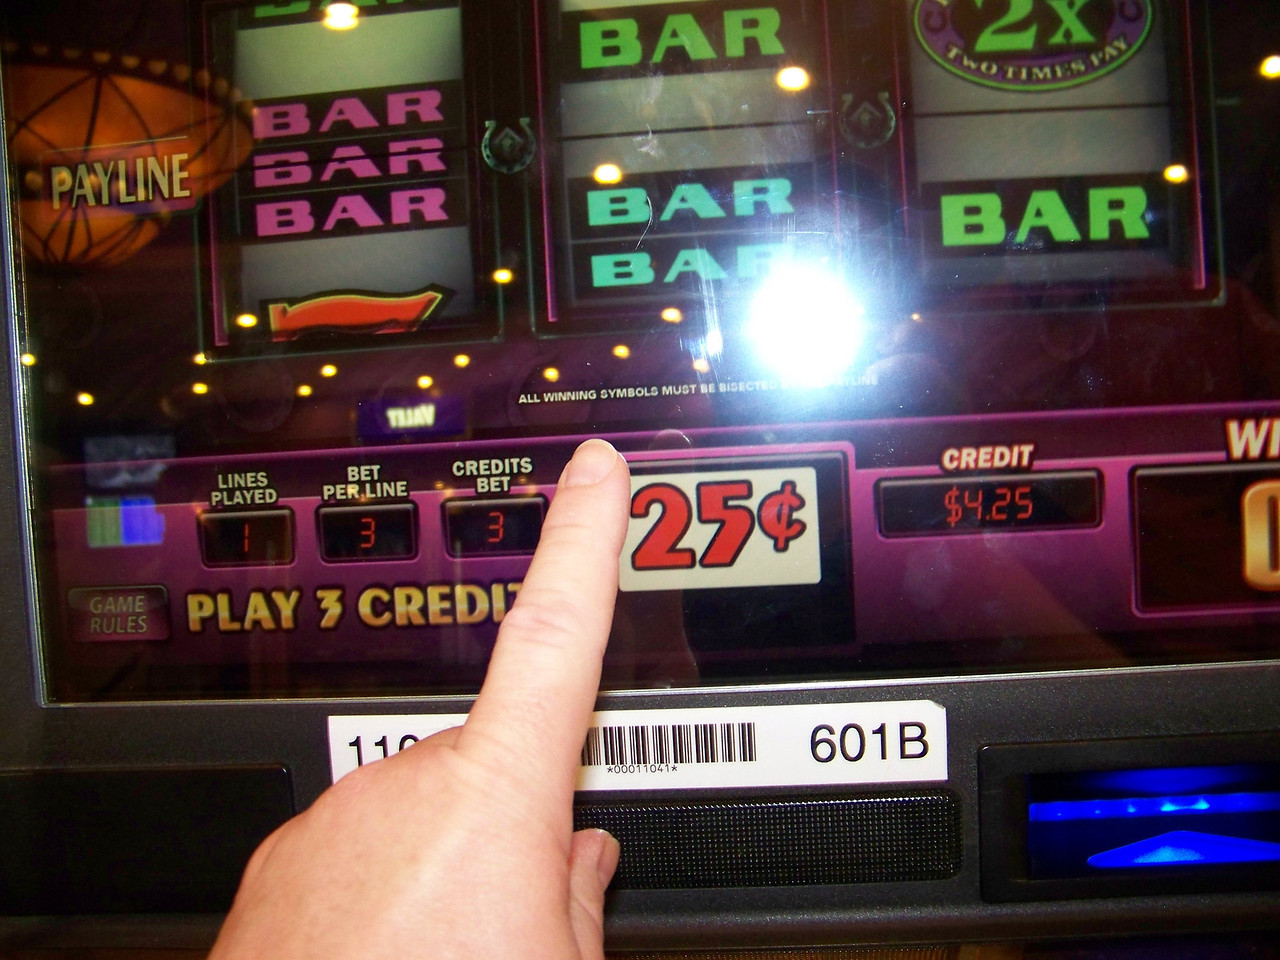 Jeff's spin #1 on the Wheel of Fortune machine.  Result: No win.  Balance: $4.25.<br /> [Reno]